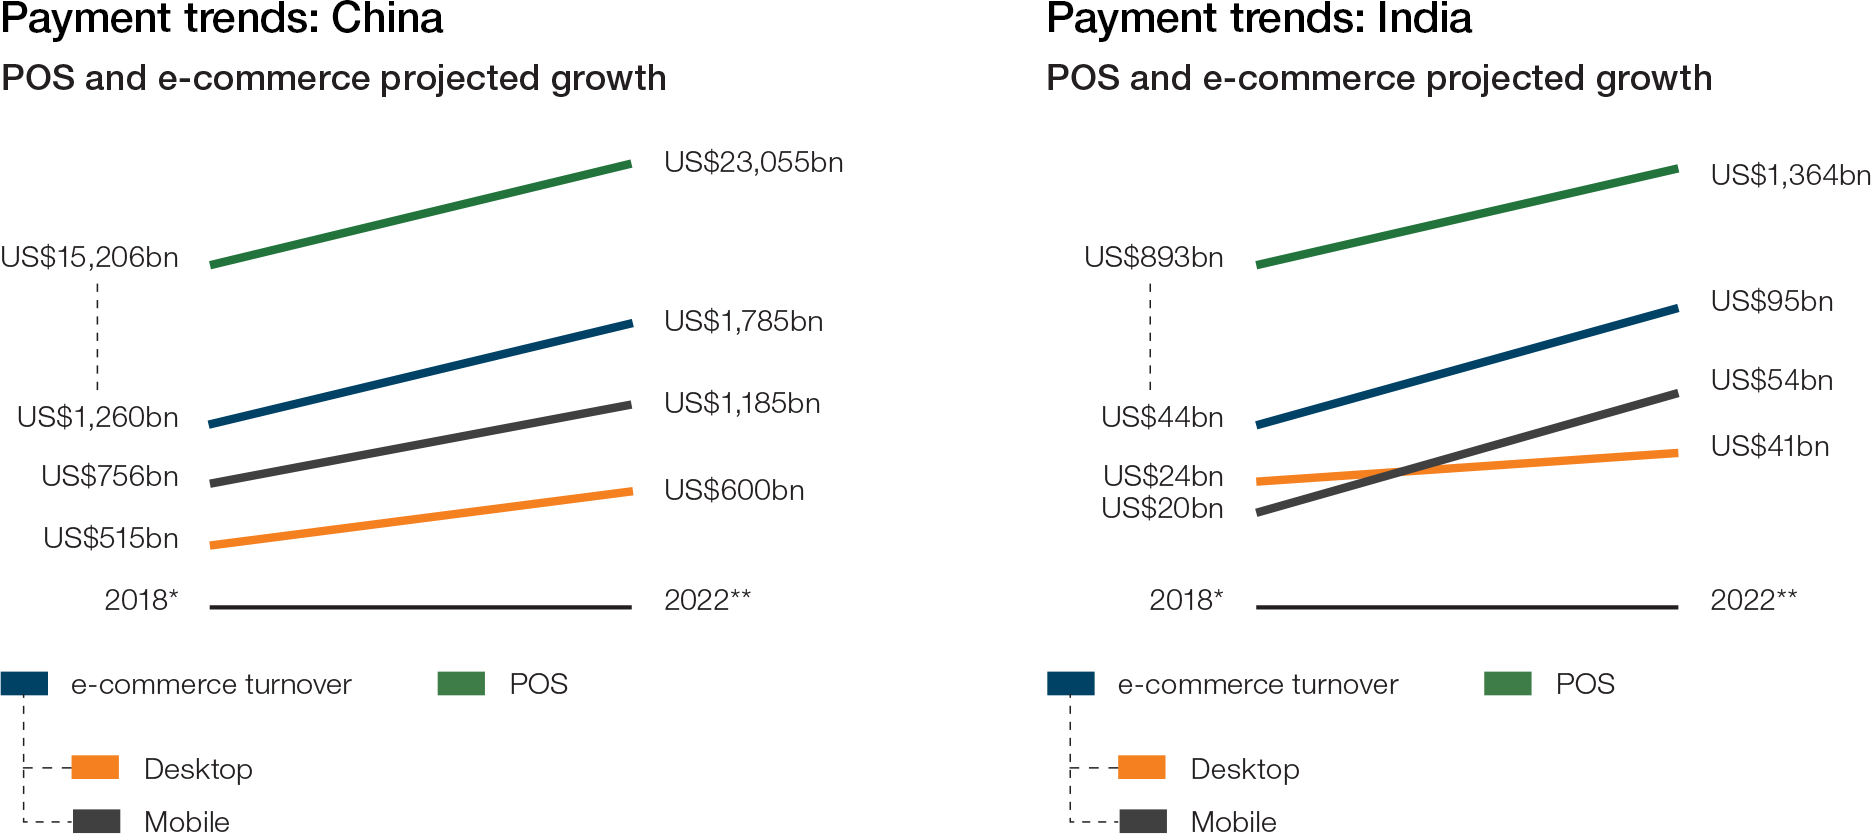 Chart 2: Payment trends in China and India